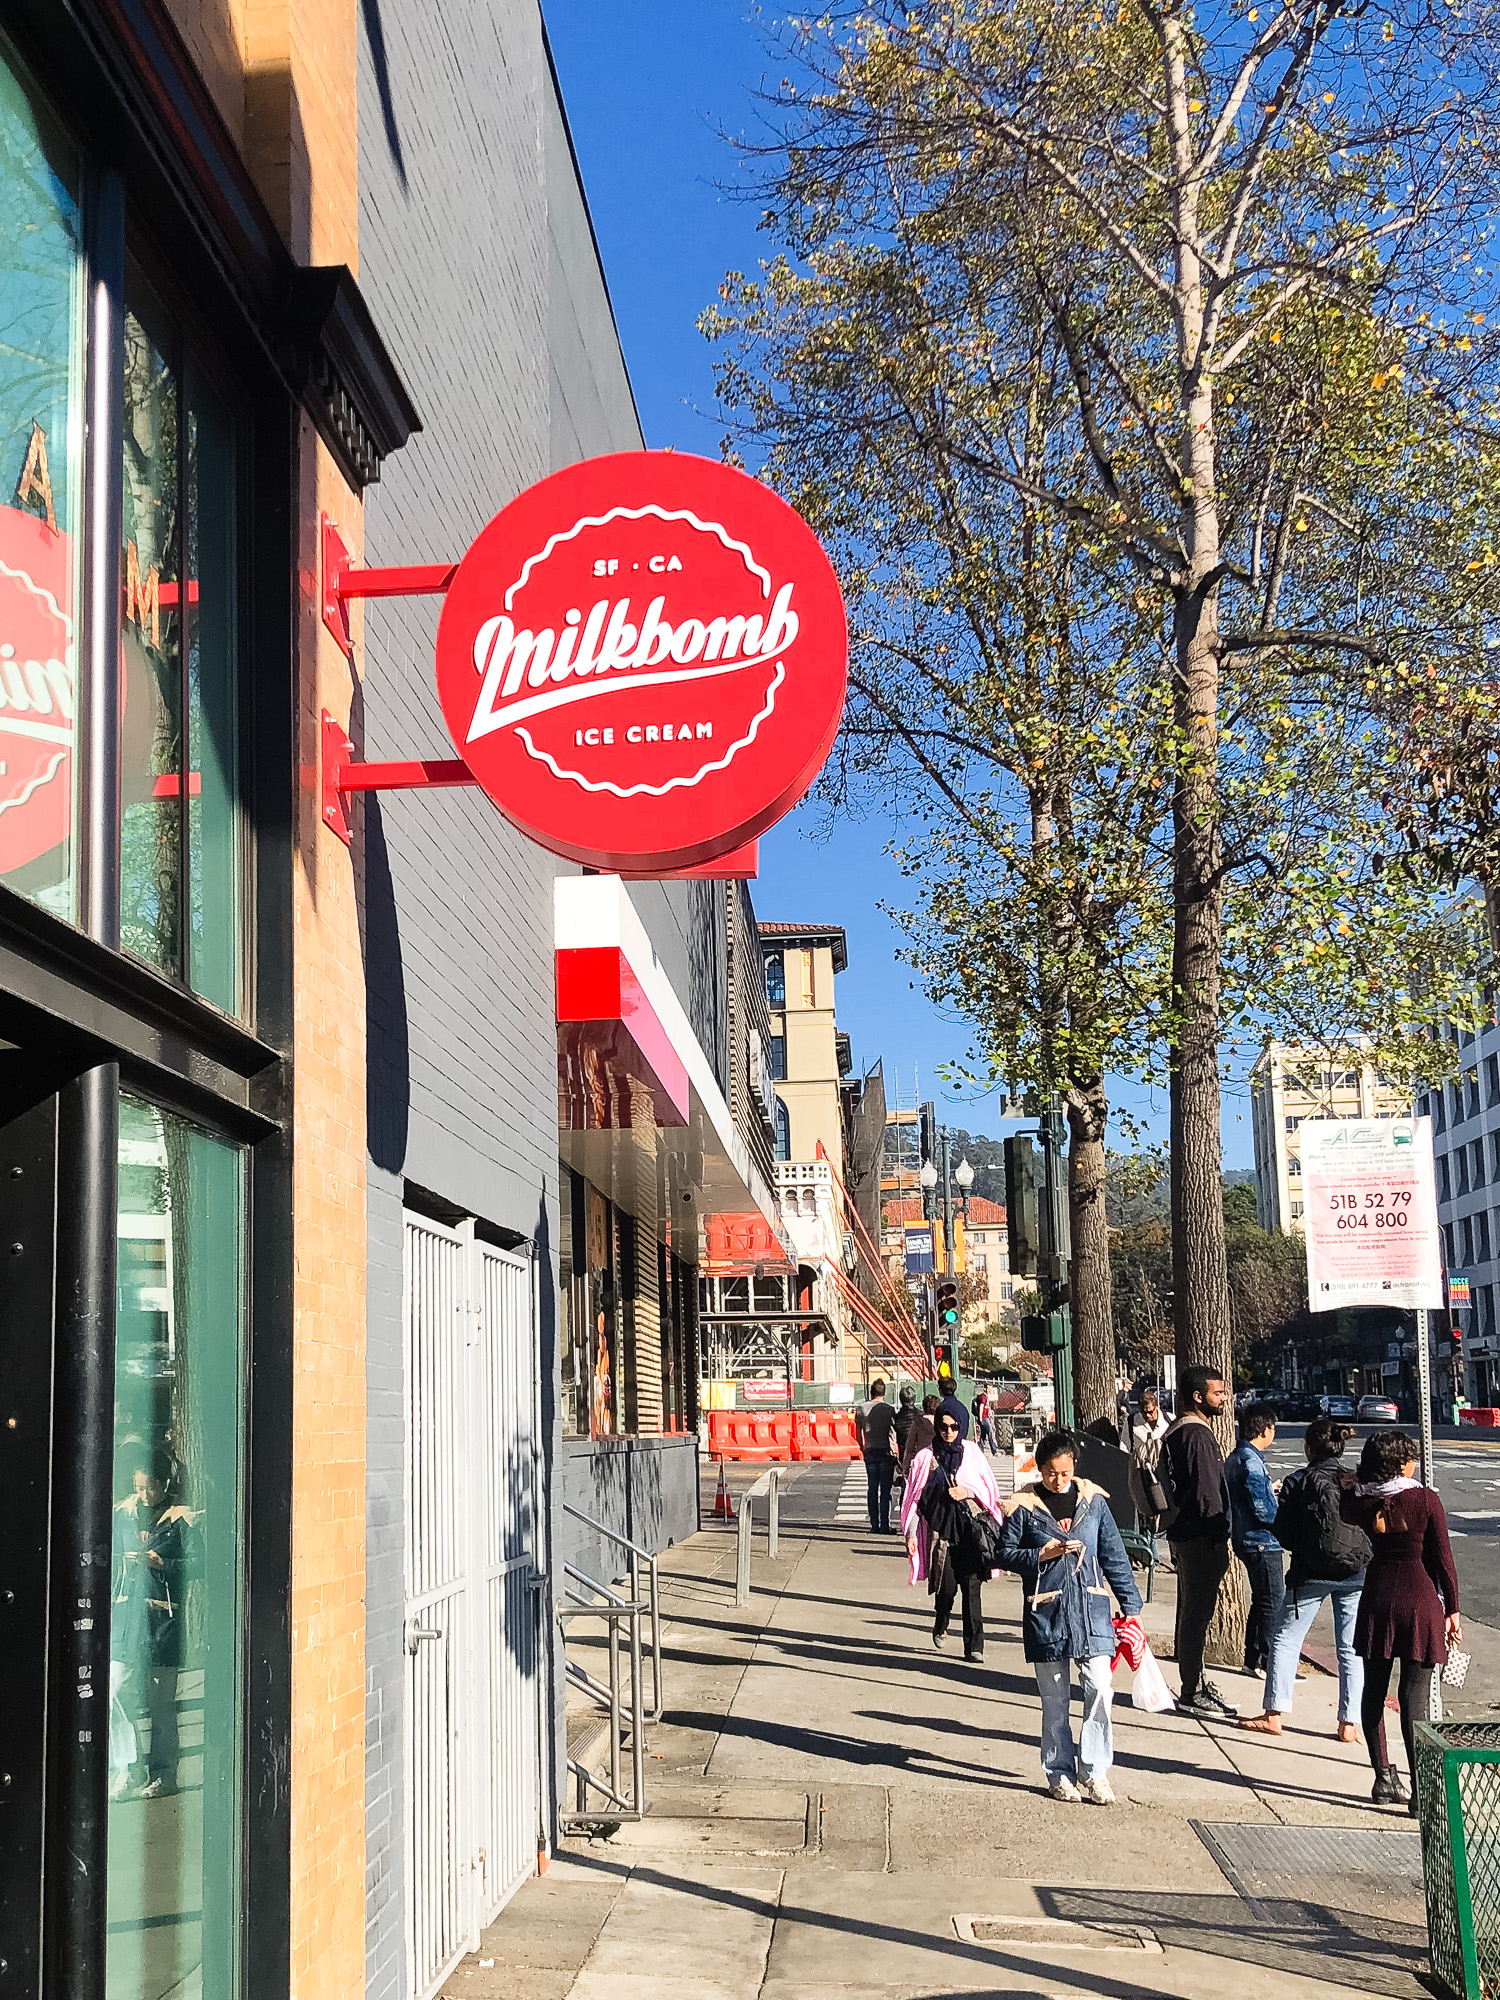 Red circular blade sign with white script for Milkbomb, a sweet stop for donut ice cream sandwiches.